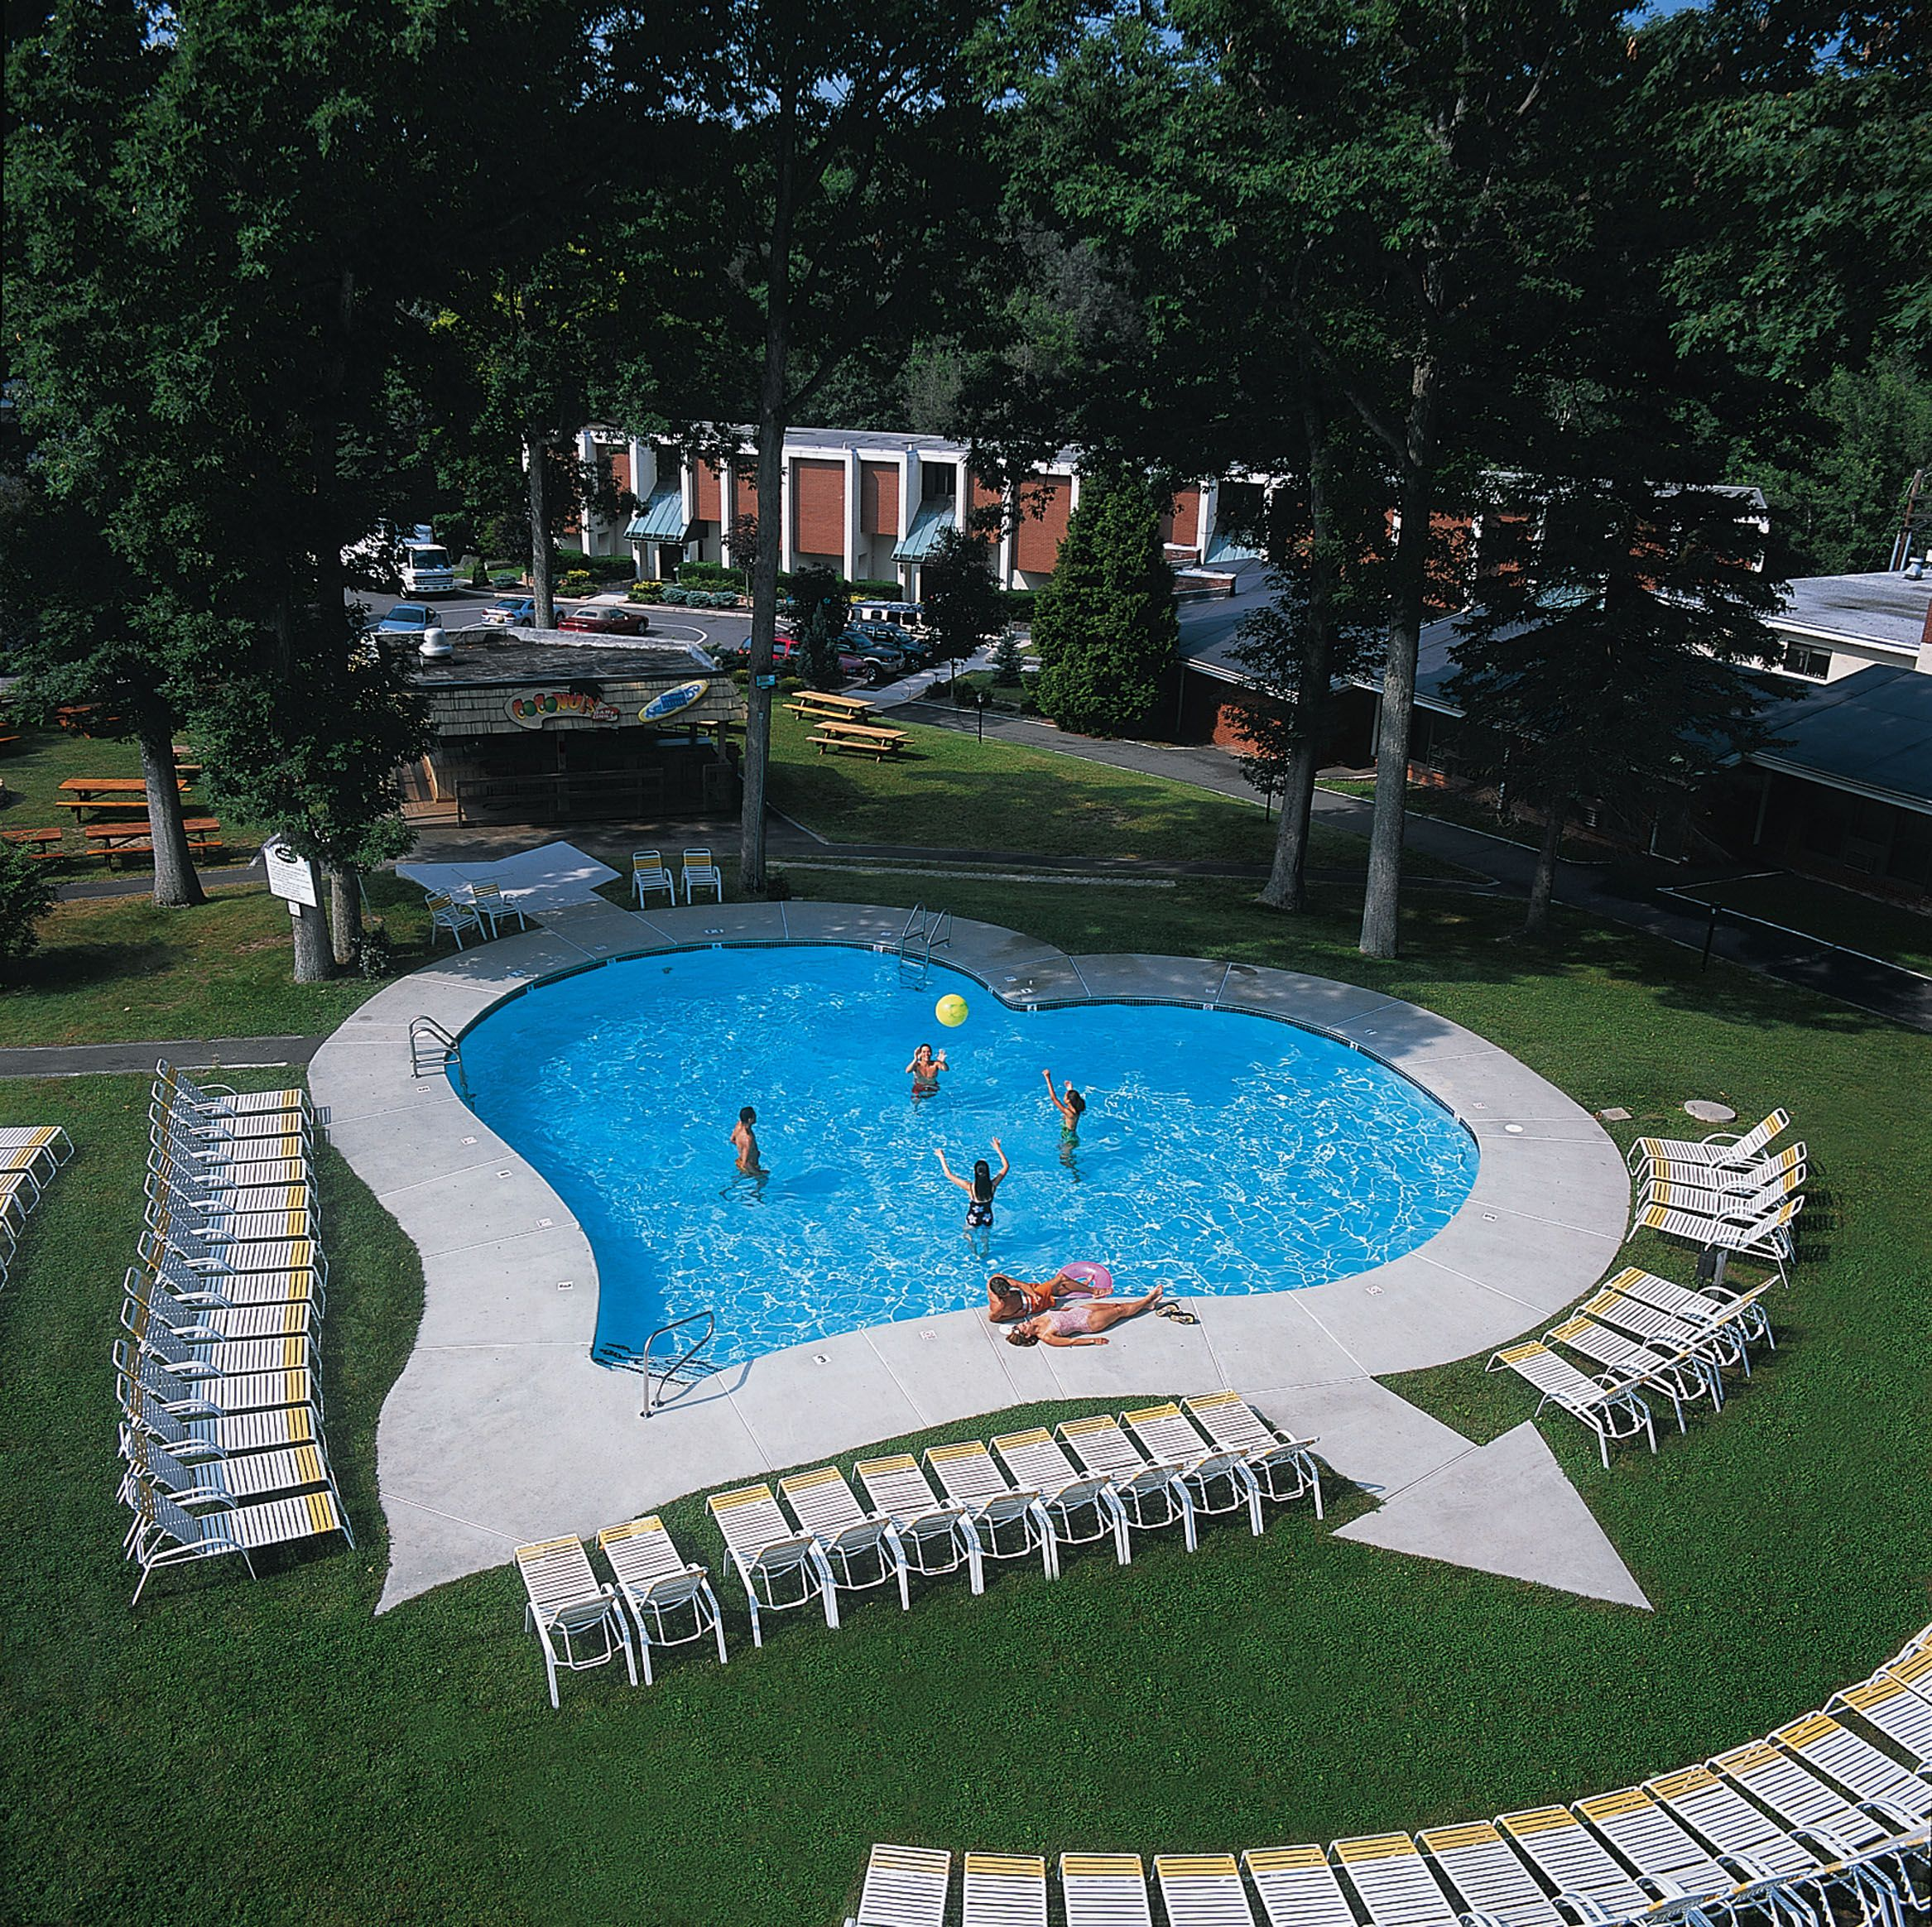 Delightful Cove Haven Entertainment Resorts Lakeville, Pennsylvania. Loved The Outdoor Heart  Shaped Pool! Gallery